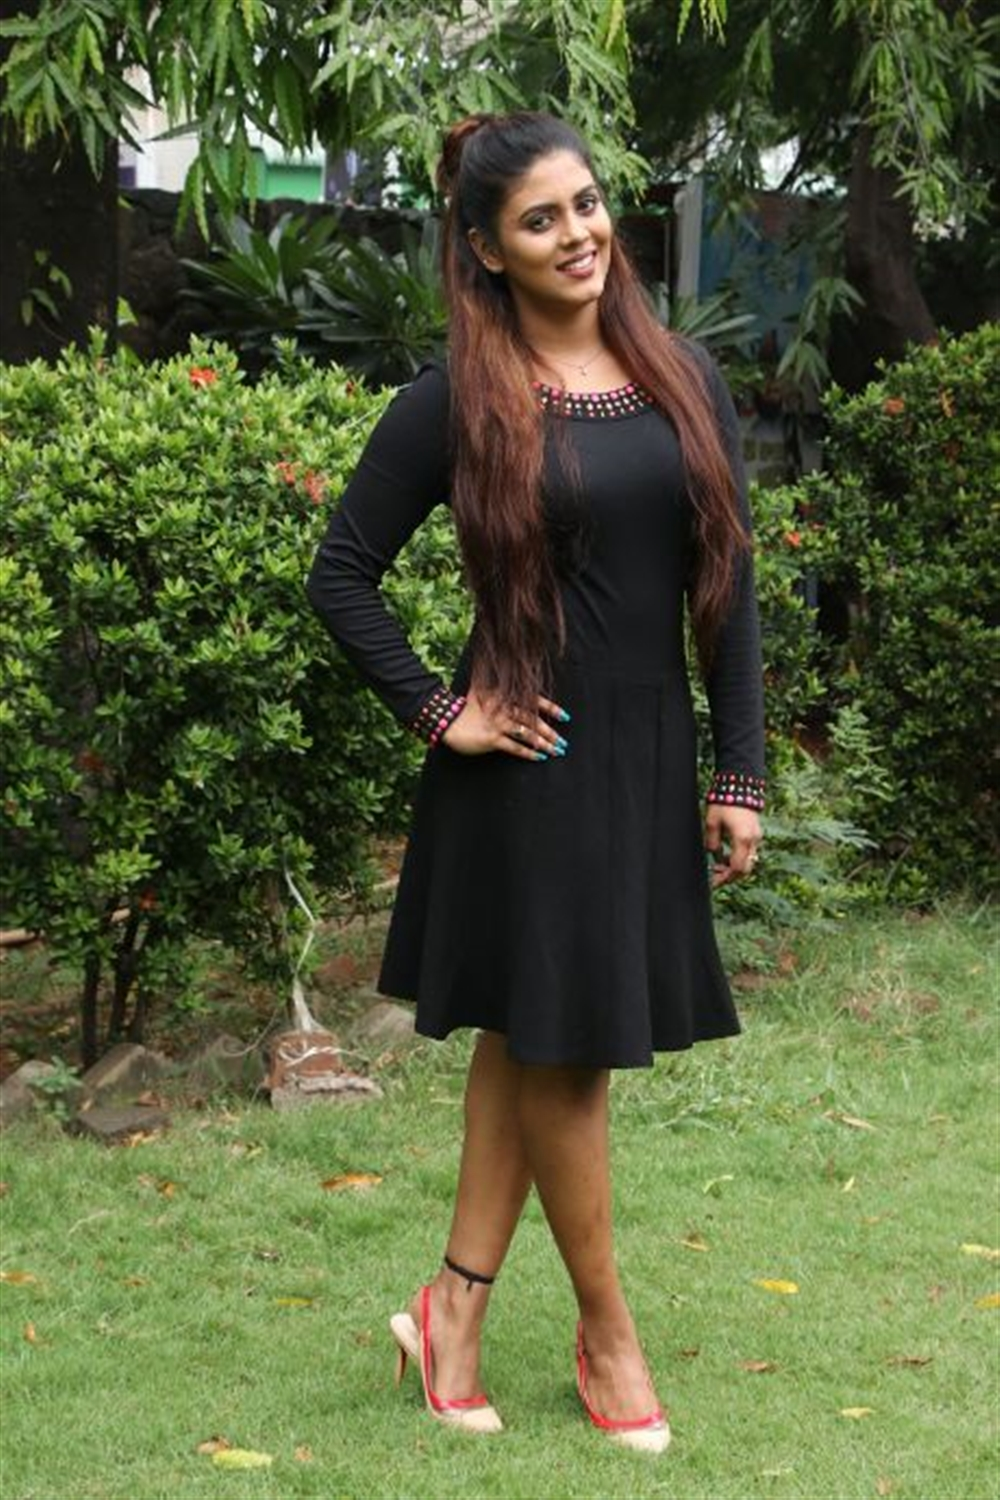 Tamil Actress Iniya in Black Dress Pics